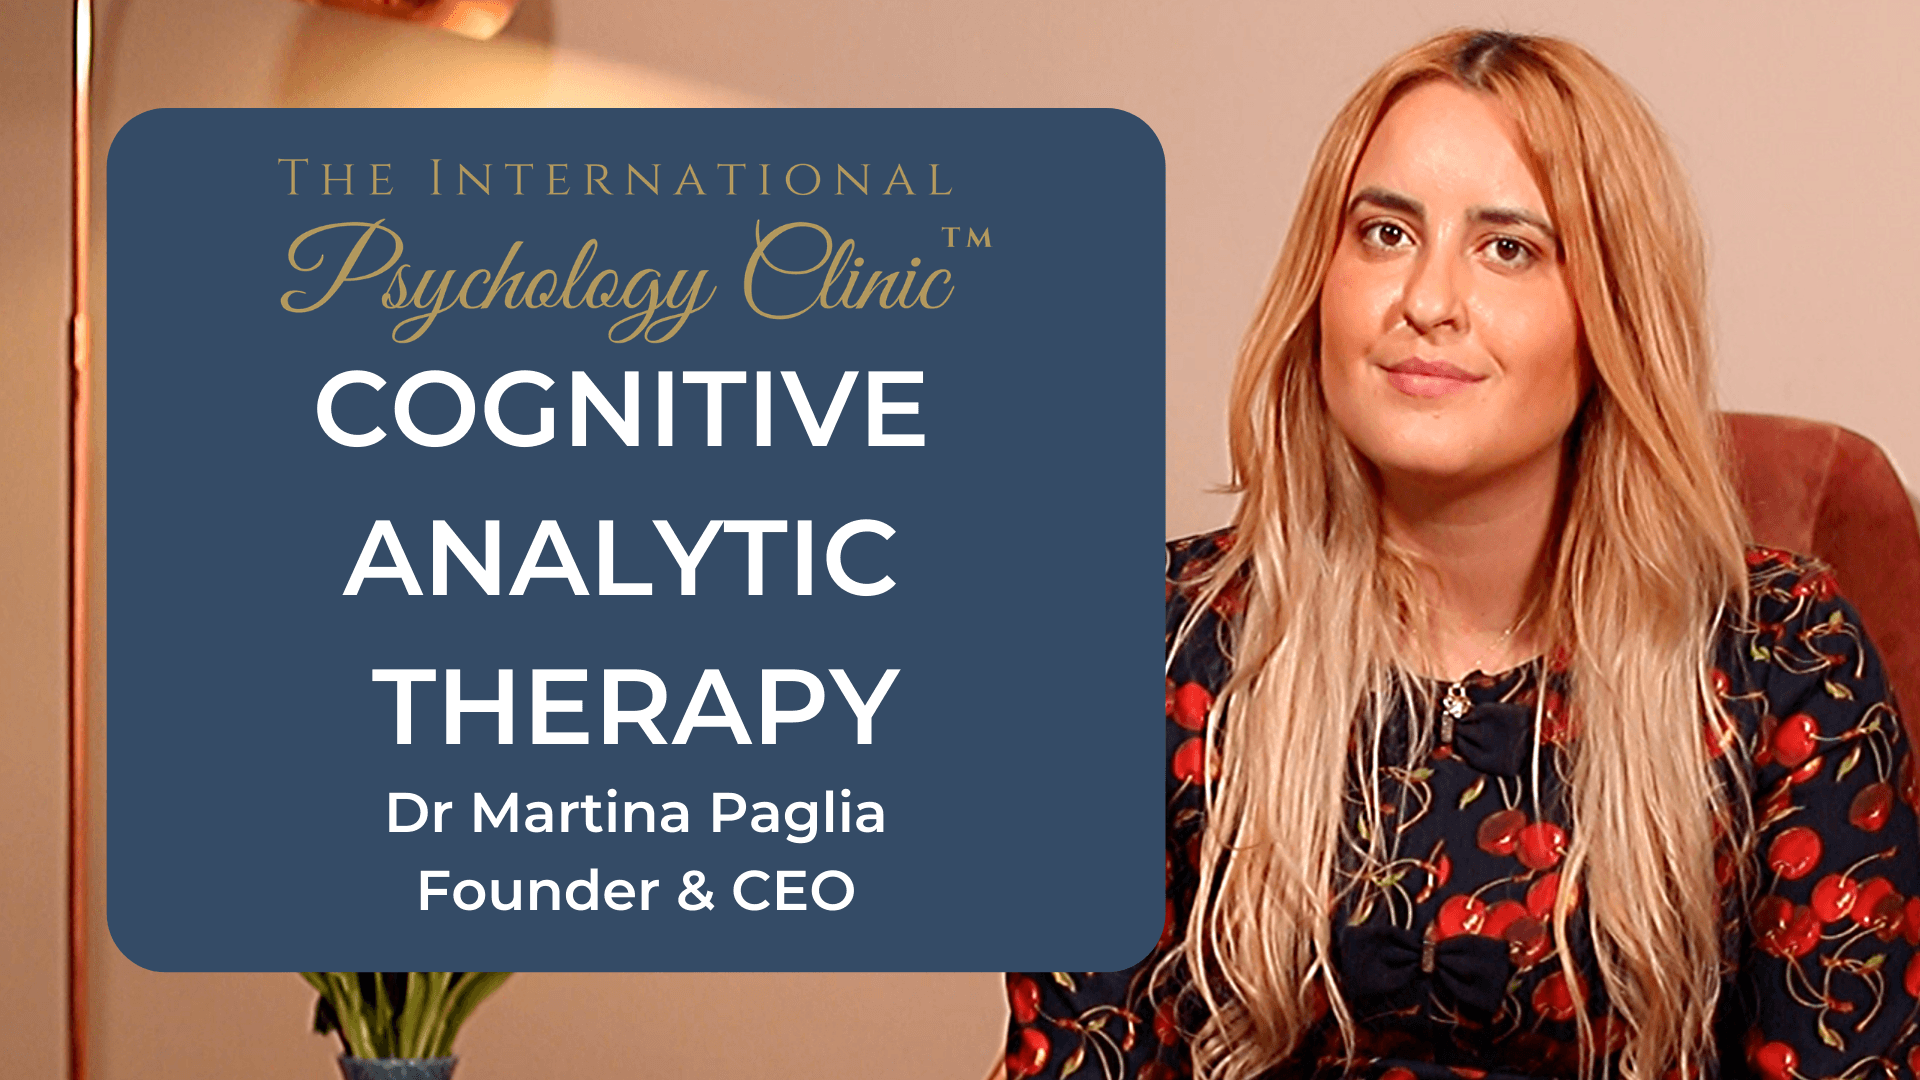 Cognitive Analytic Therapy